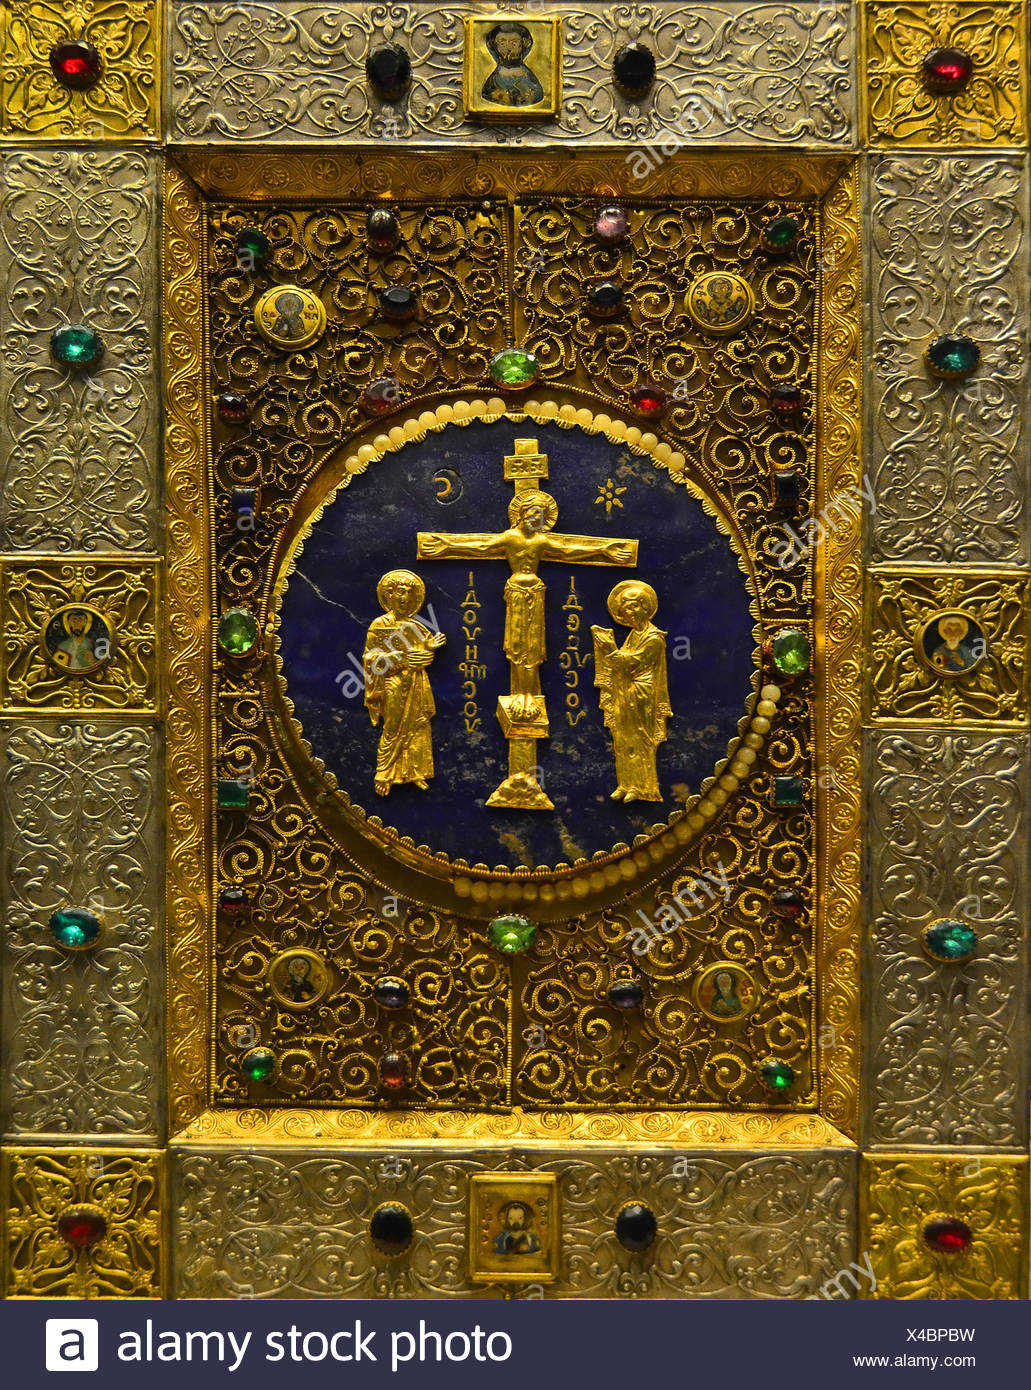 Priceless ancient byzantine gold bible box,decorated with large rubies and saphires - Stock Image